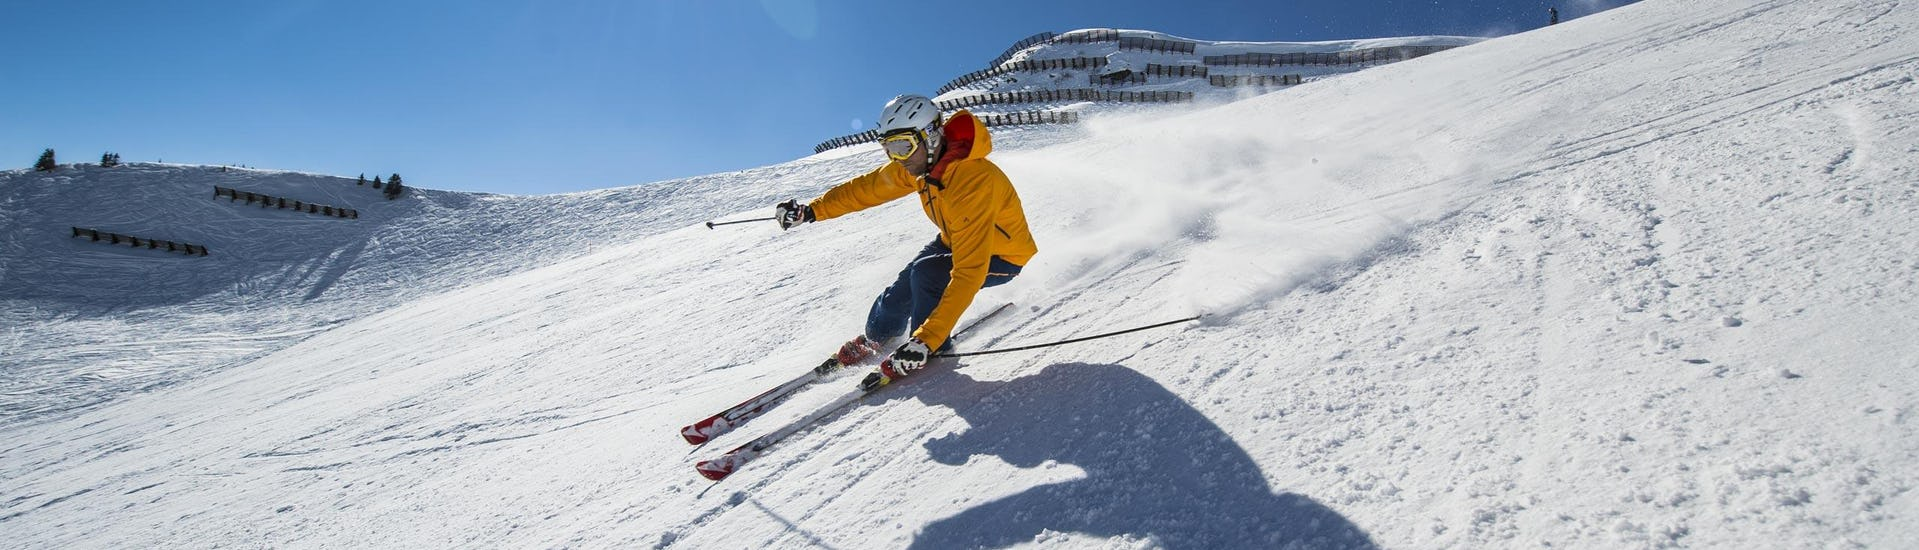 Ski Instructor Private for Adults - All Levels: A skier is skiing down a sunny ski slope while participating in an activity offered by Skischule Ötscher.